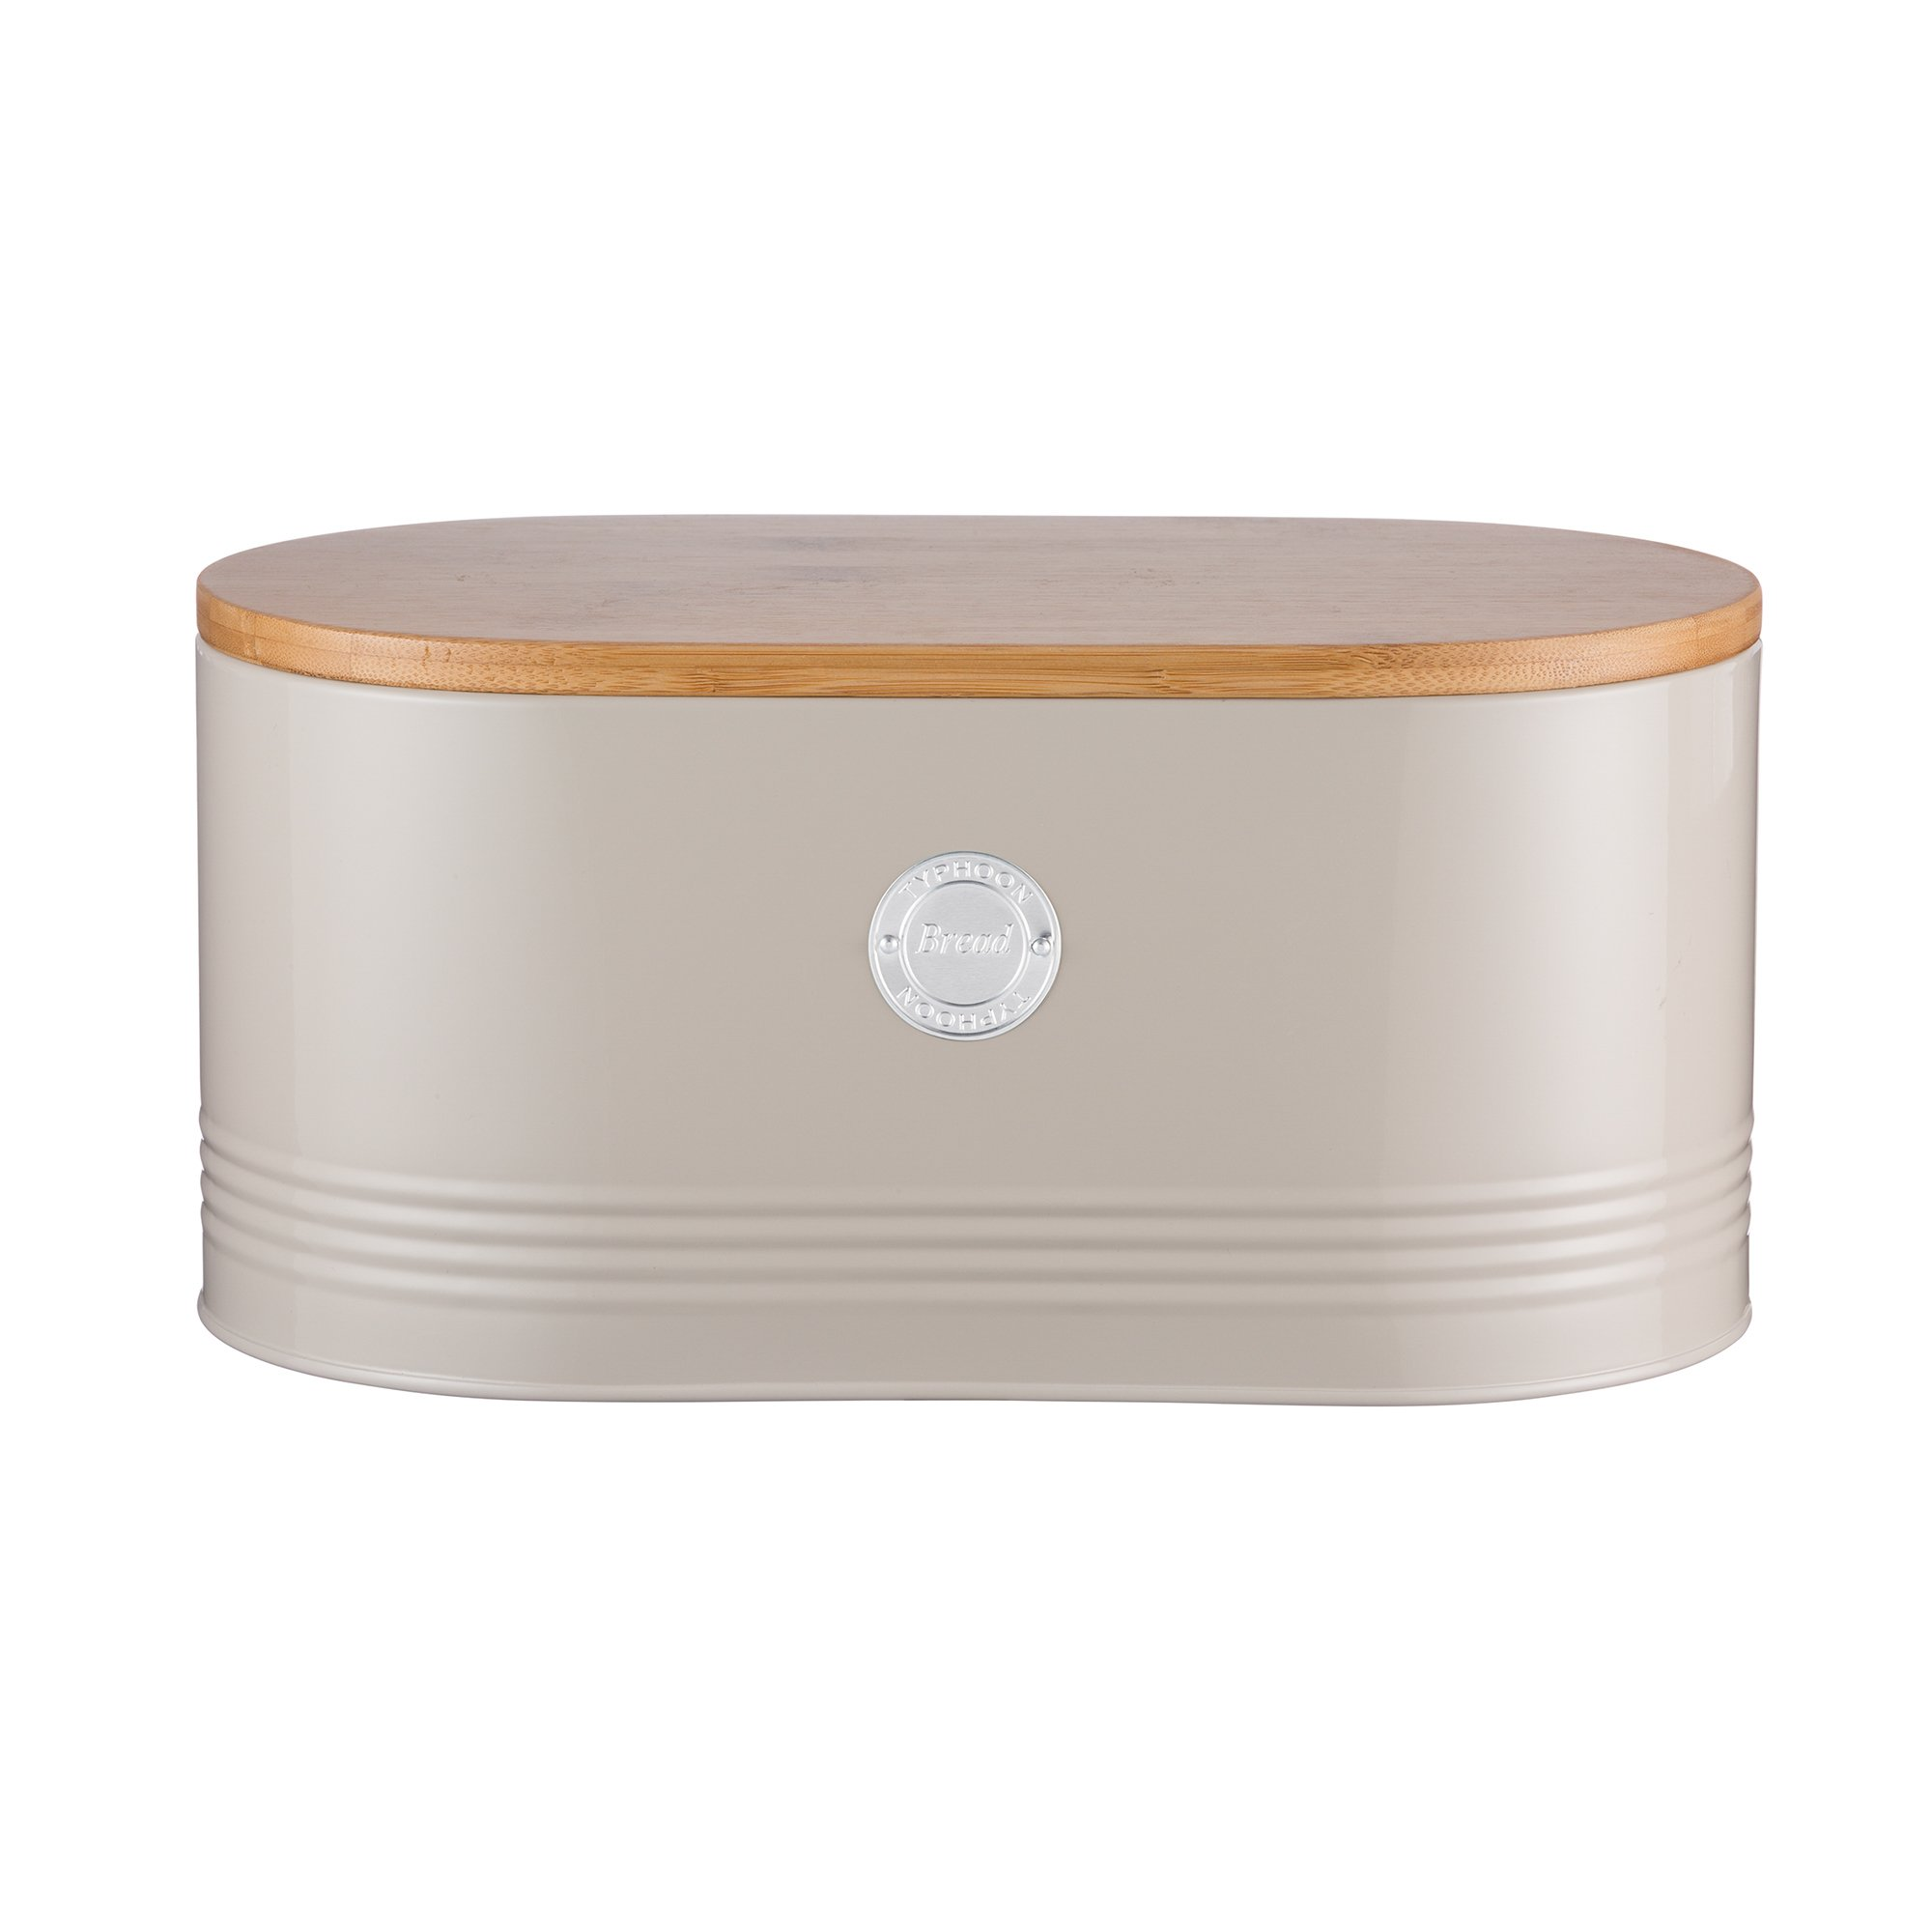 Typhoon Living Carbon Steel Bread Bin with Bamboo Lid, 13-Inches by 7-Inches by 6-1/4-Inches, Putty